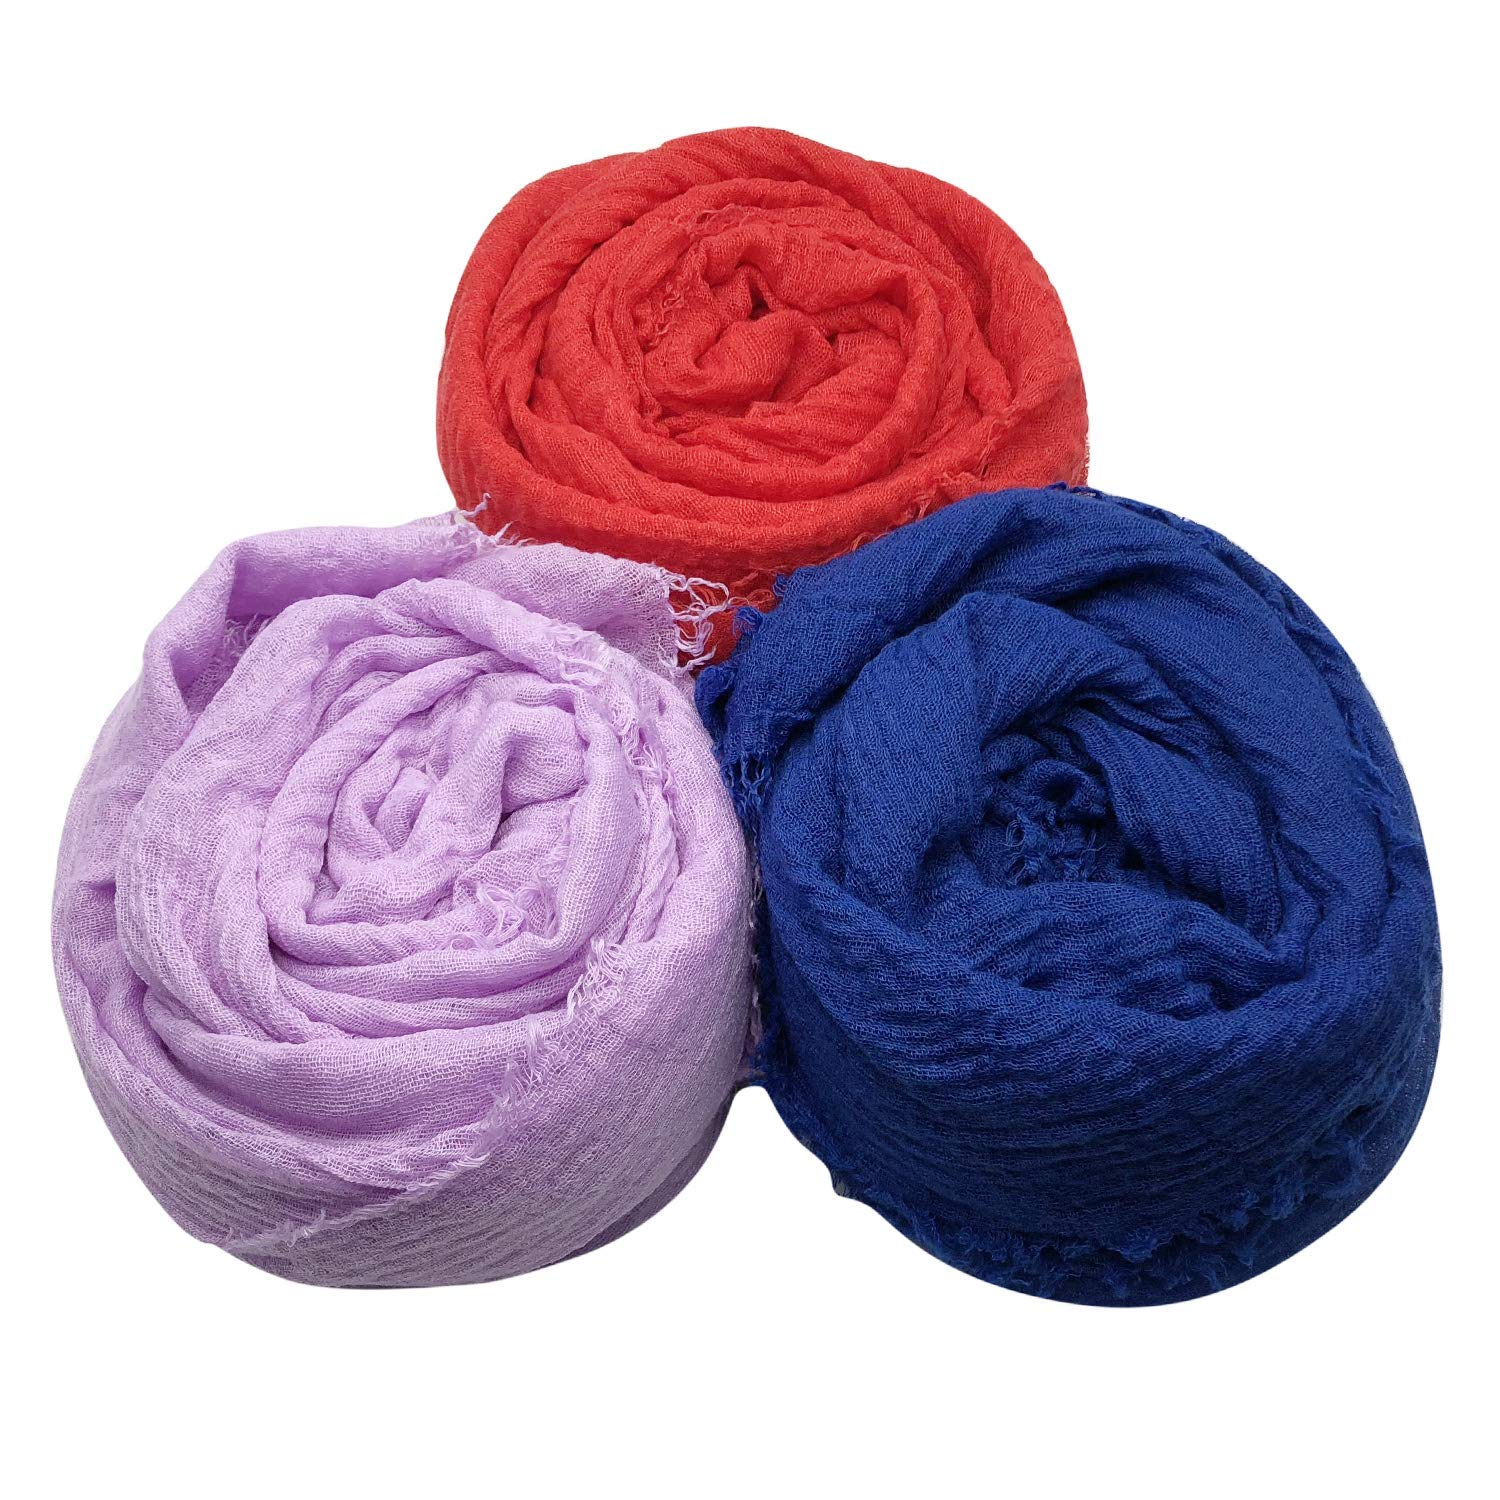 MANSHU 4PCS Women Soft Cotton Hemp Scarf Shawl Long Scarves Big Head Scarves. Scarf and Wrap